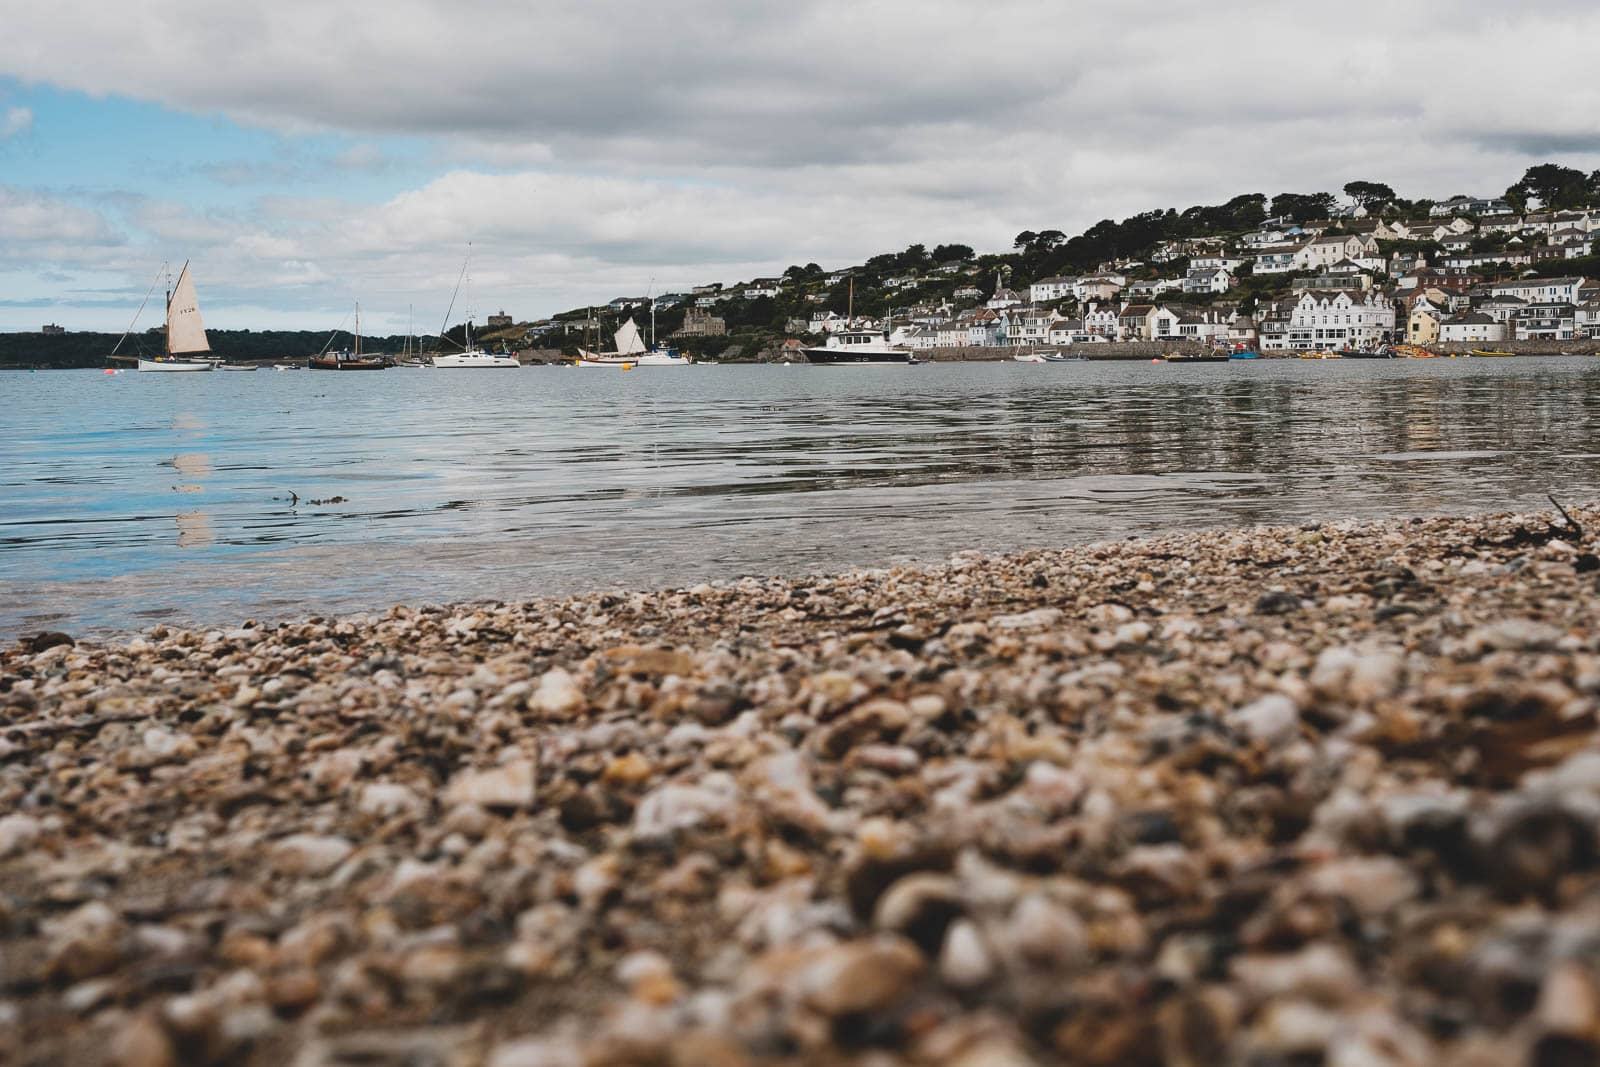 Wedding Photography in the St Mawes area of Cornwall